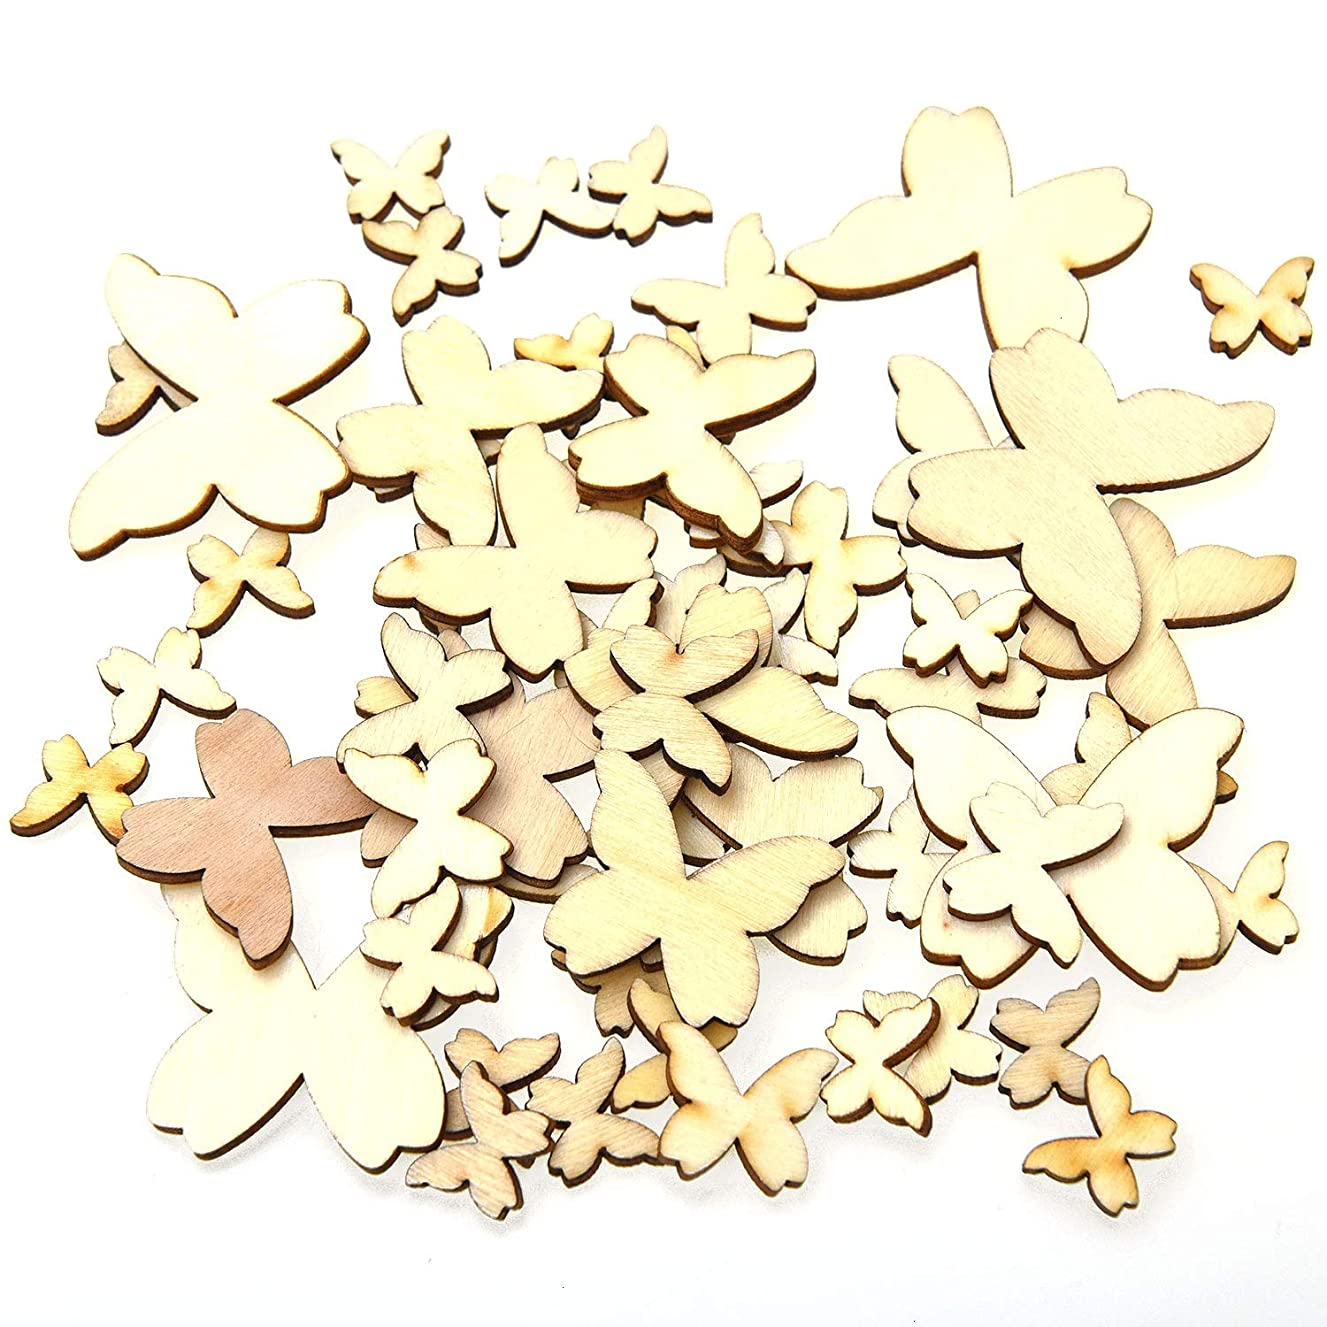 Monrocco Natural Wood Unfinished Cutout Veneers Slices Wooden Butterfly Cutouts Craft Mixed Size Wooden Butterflies Craft Embellishments Wooden Cutout Scrapbooking for DIY Crafting Decoration